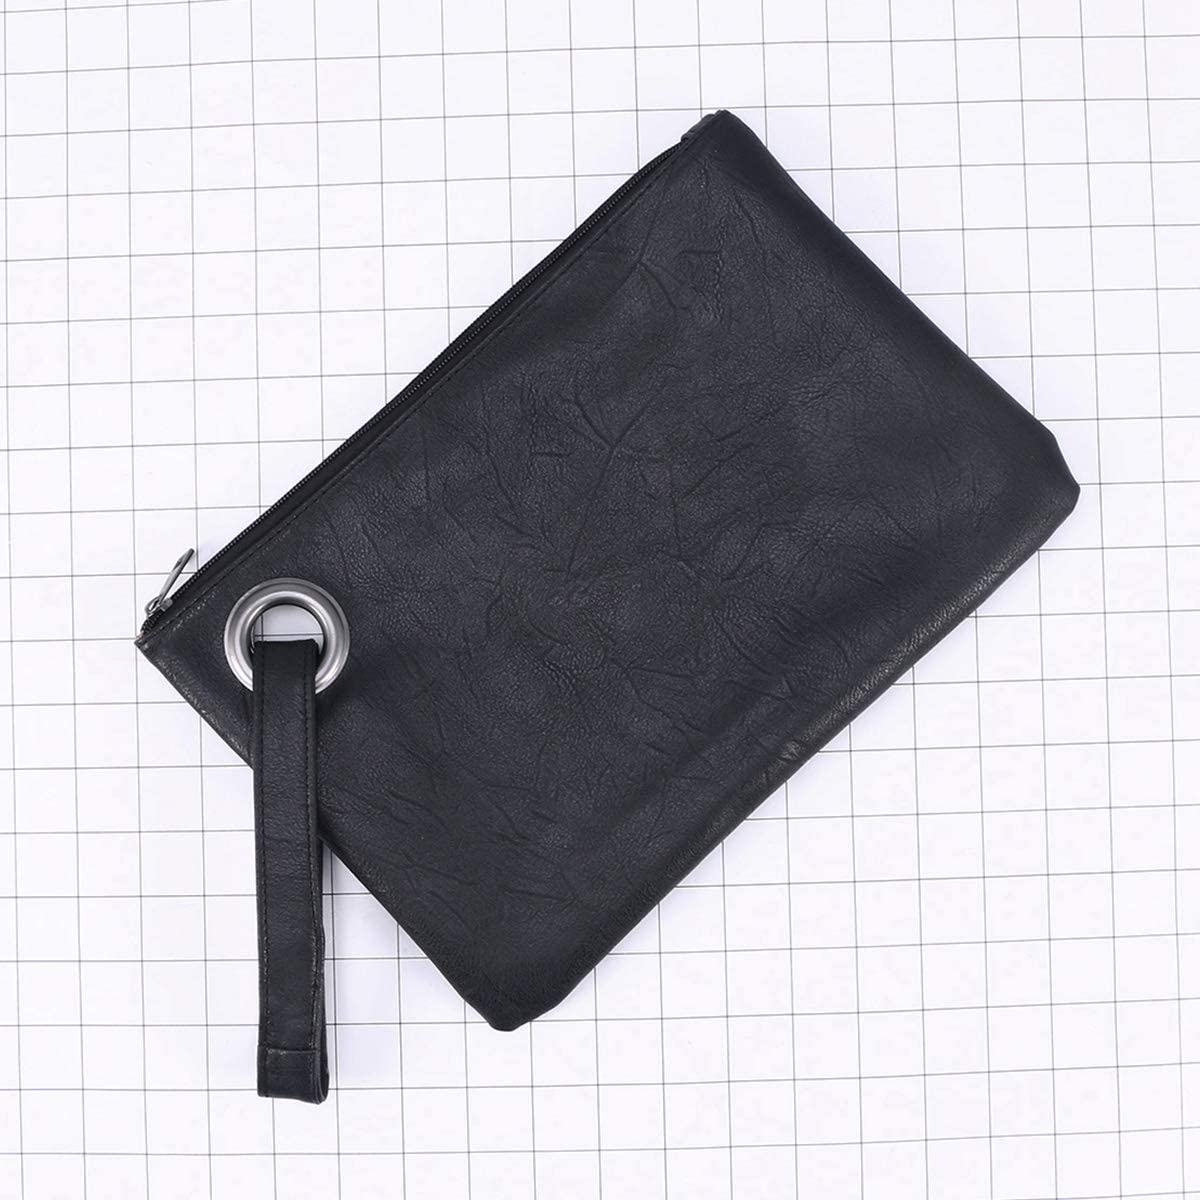 Simple Clutch Bags Retro Hand Bags Large Capacity Fashionable Handbags for Women Girl Black